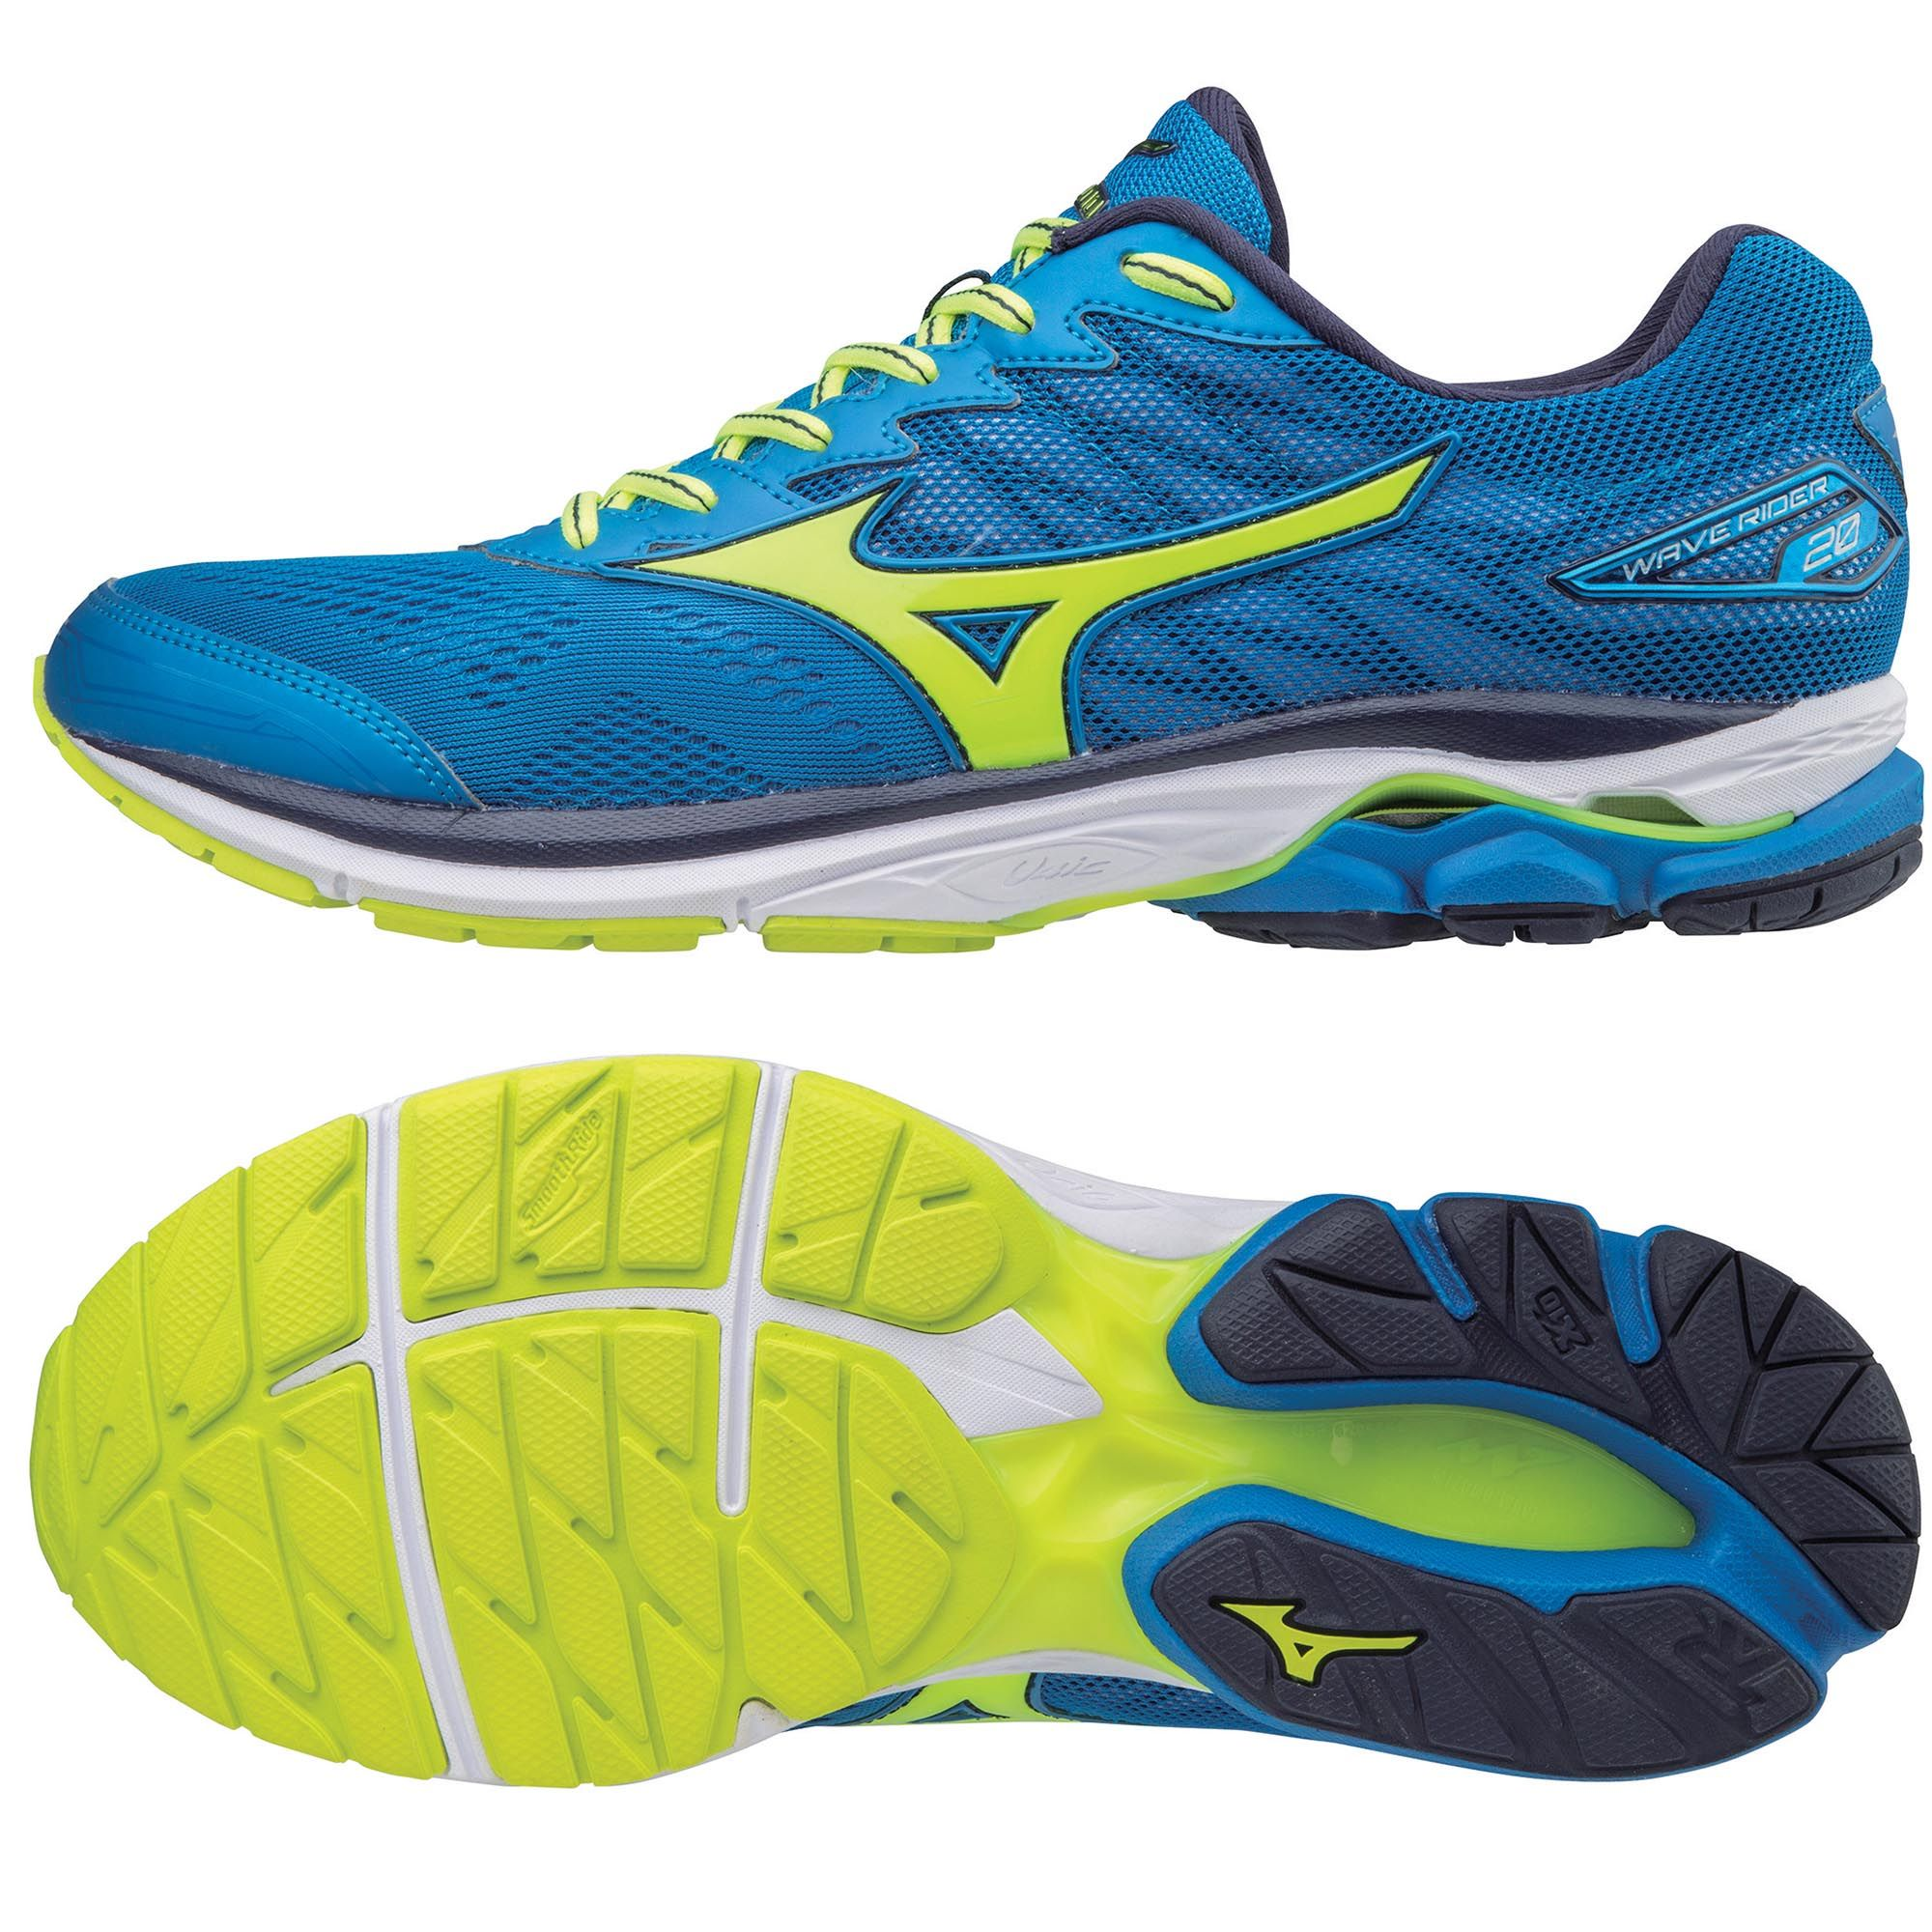 Mizuno Mens Shoes Amazon